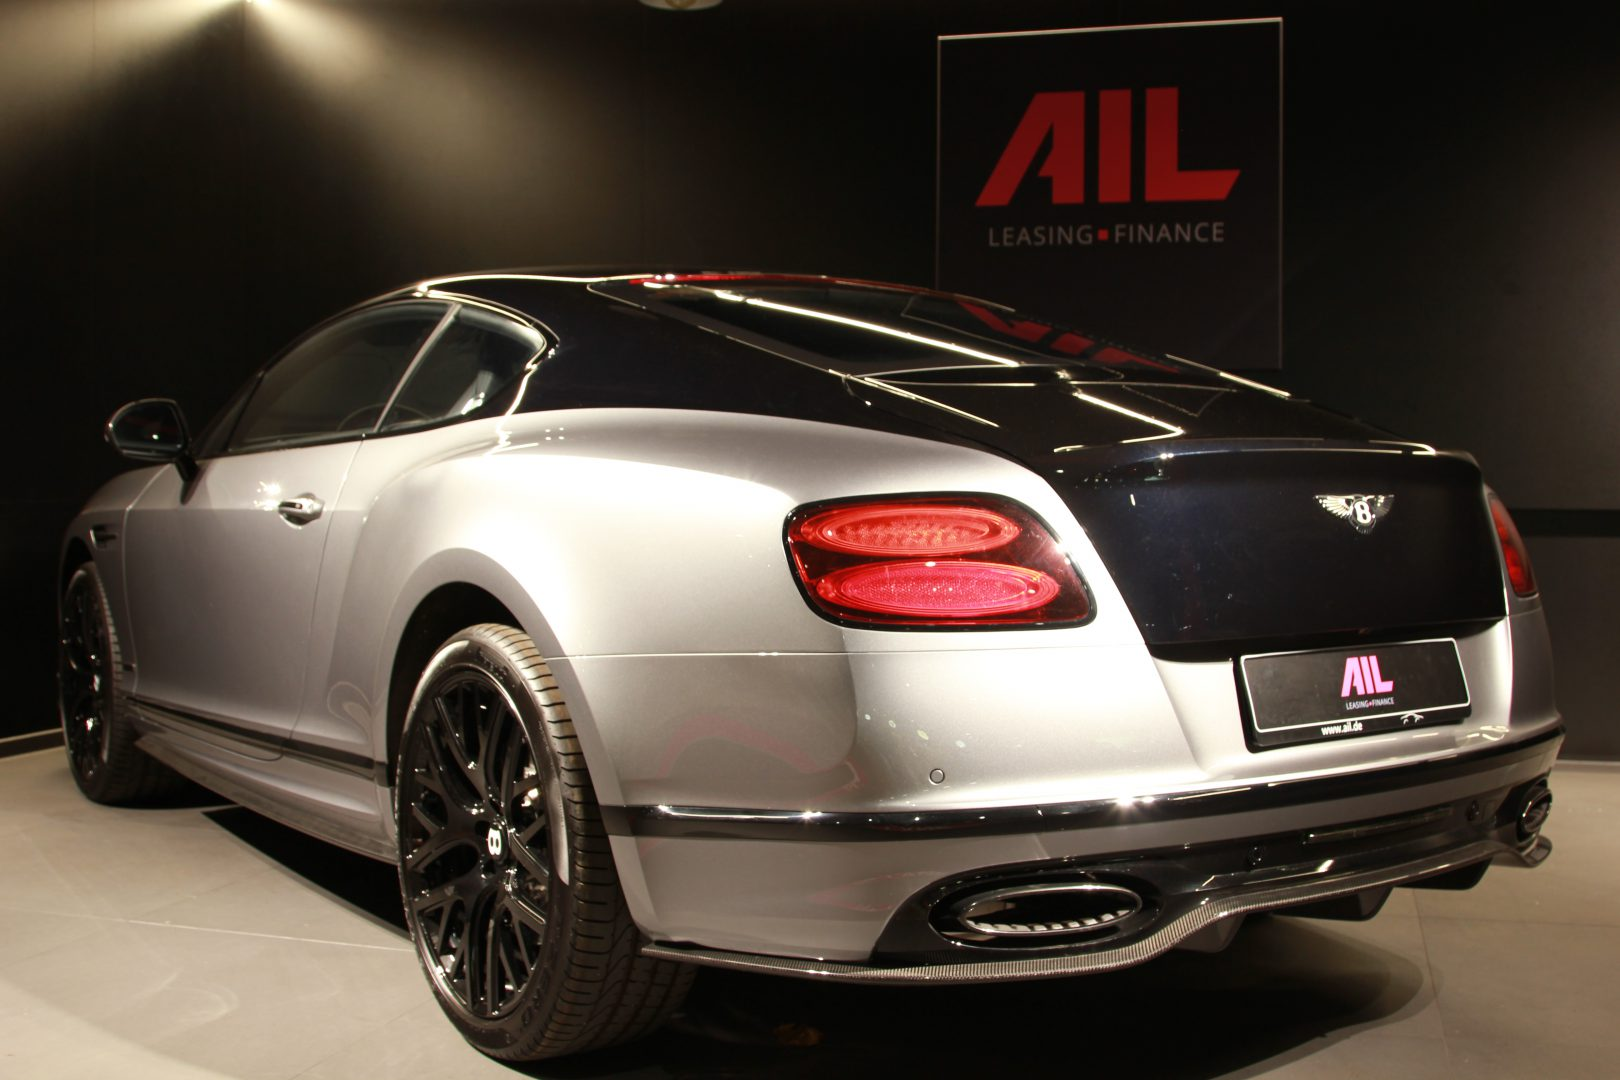 AIL Bentley Continental Supersports 1of 710 6